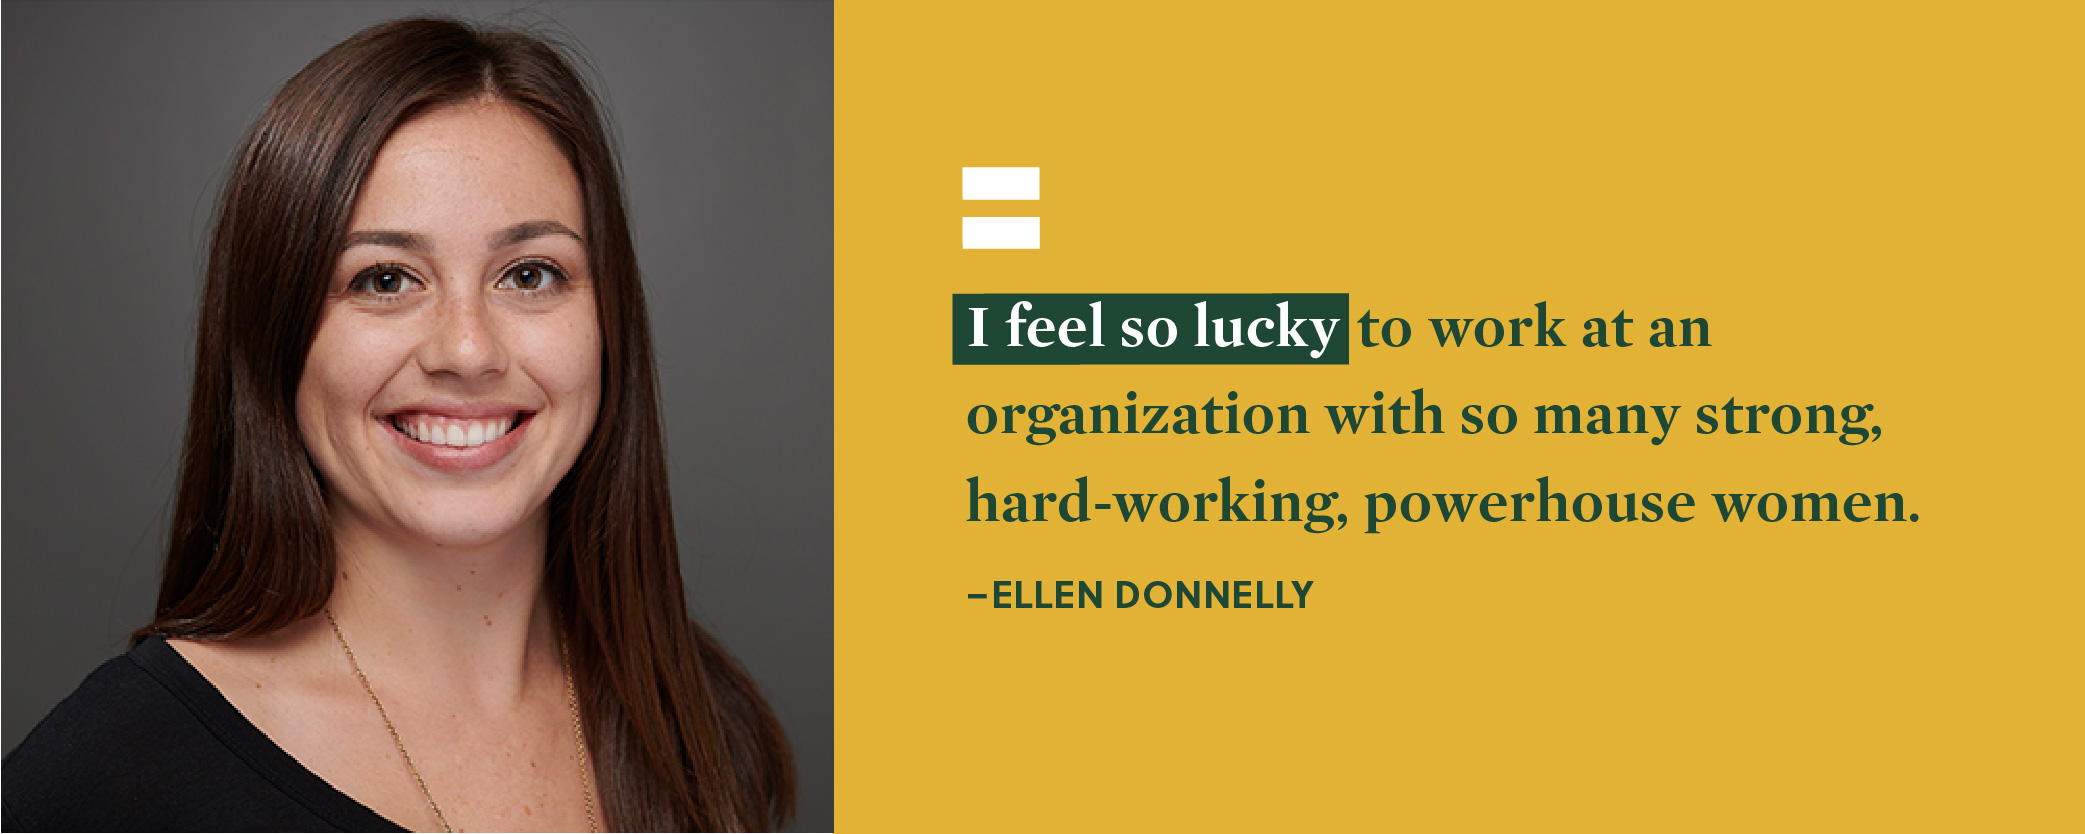 Quote. I feel so lucky to work at an organization with so many strong, hard-working, powerhouse women. Unquote. Ellen Donnelly.